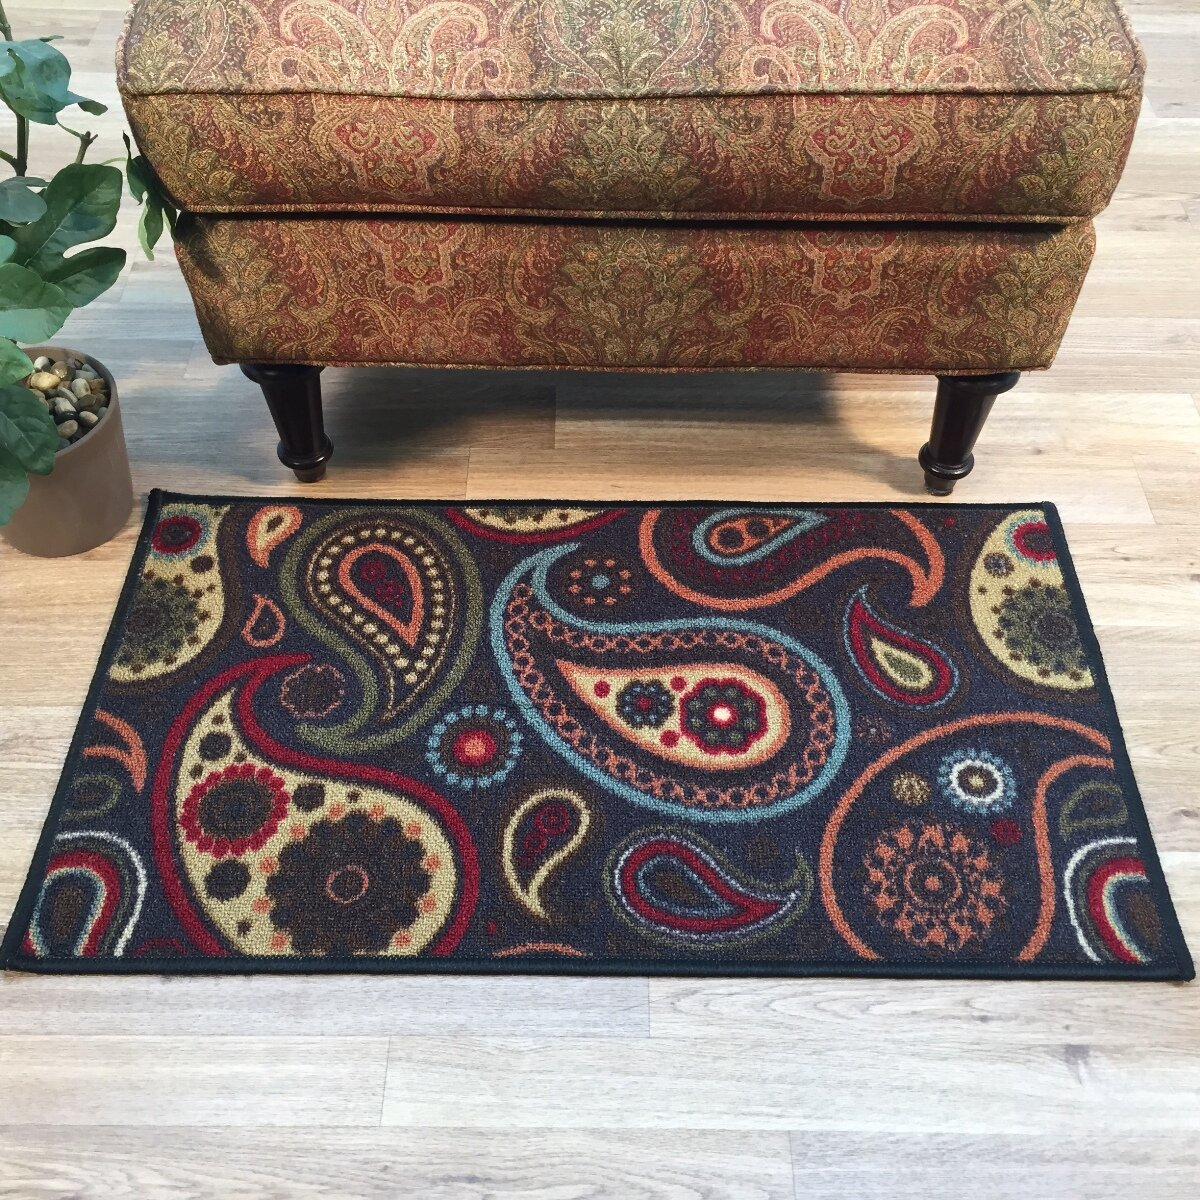 Paisley Area Rugs: Rugnur Hammam Maxy Home Paisley Floral Red Area Rug